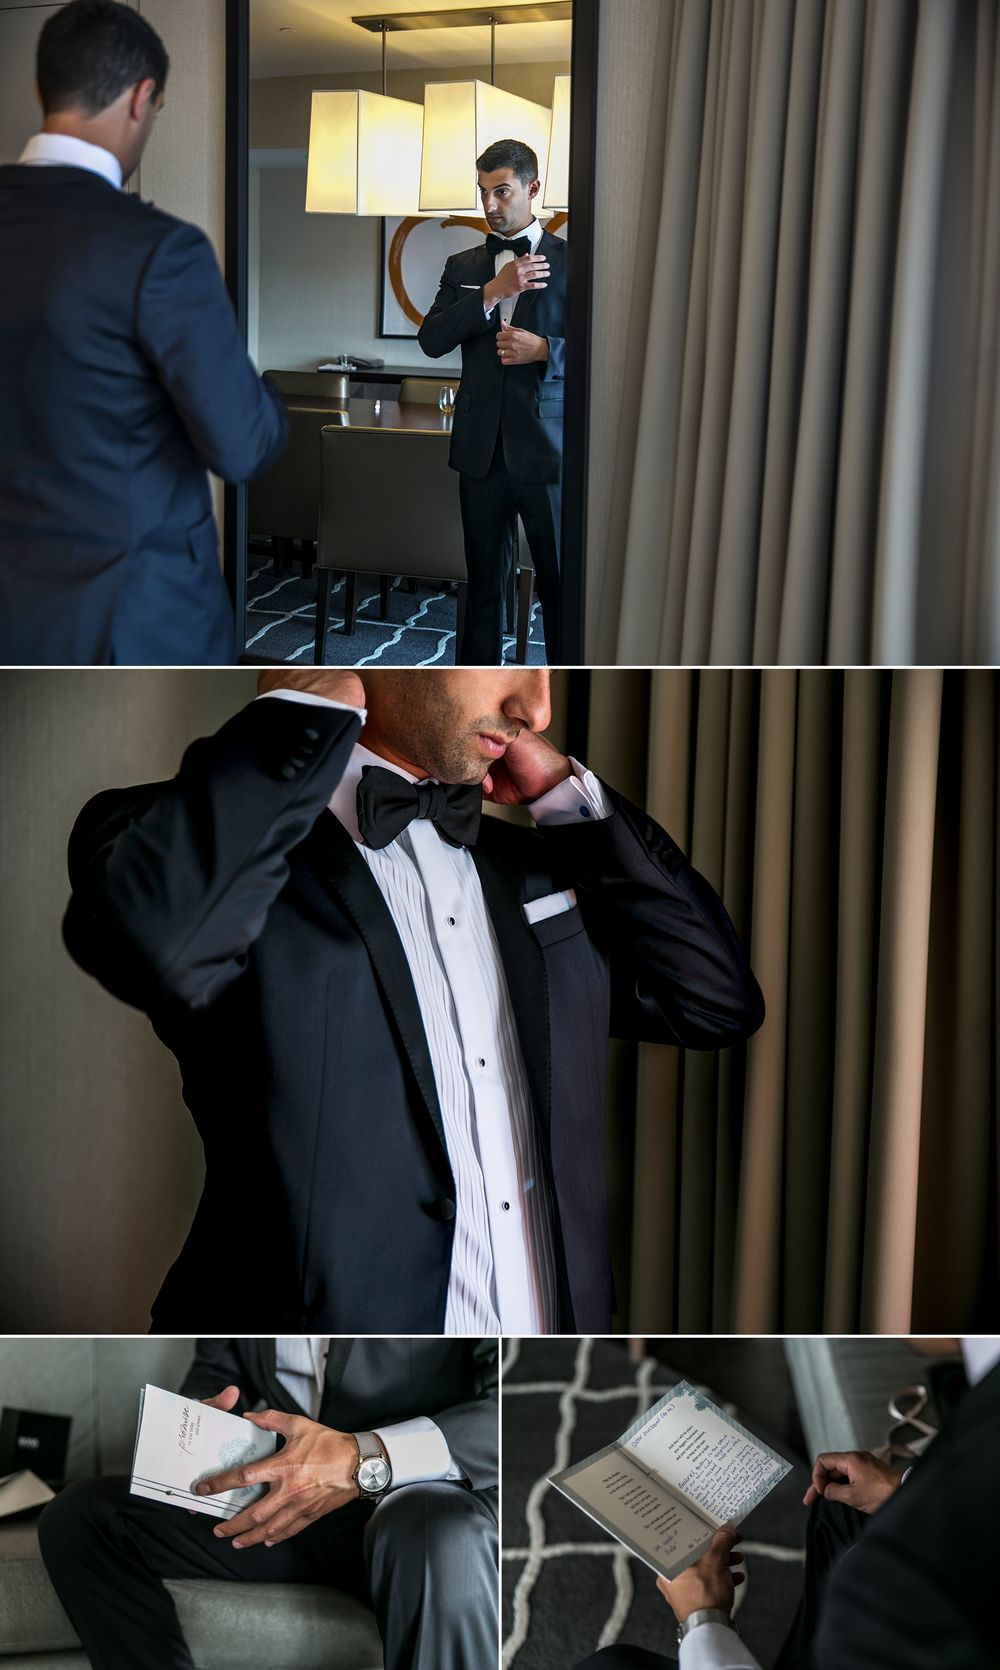 Groom getting ready for his wedding at the Westin hotel in Ottawa